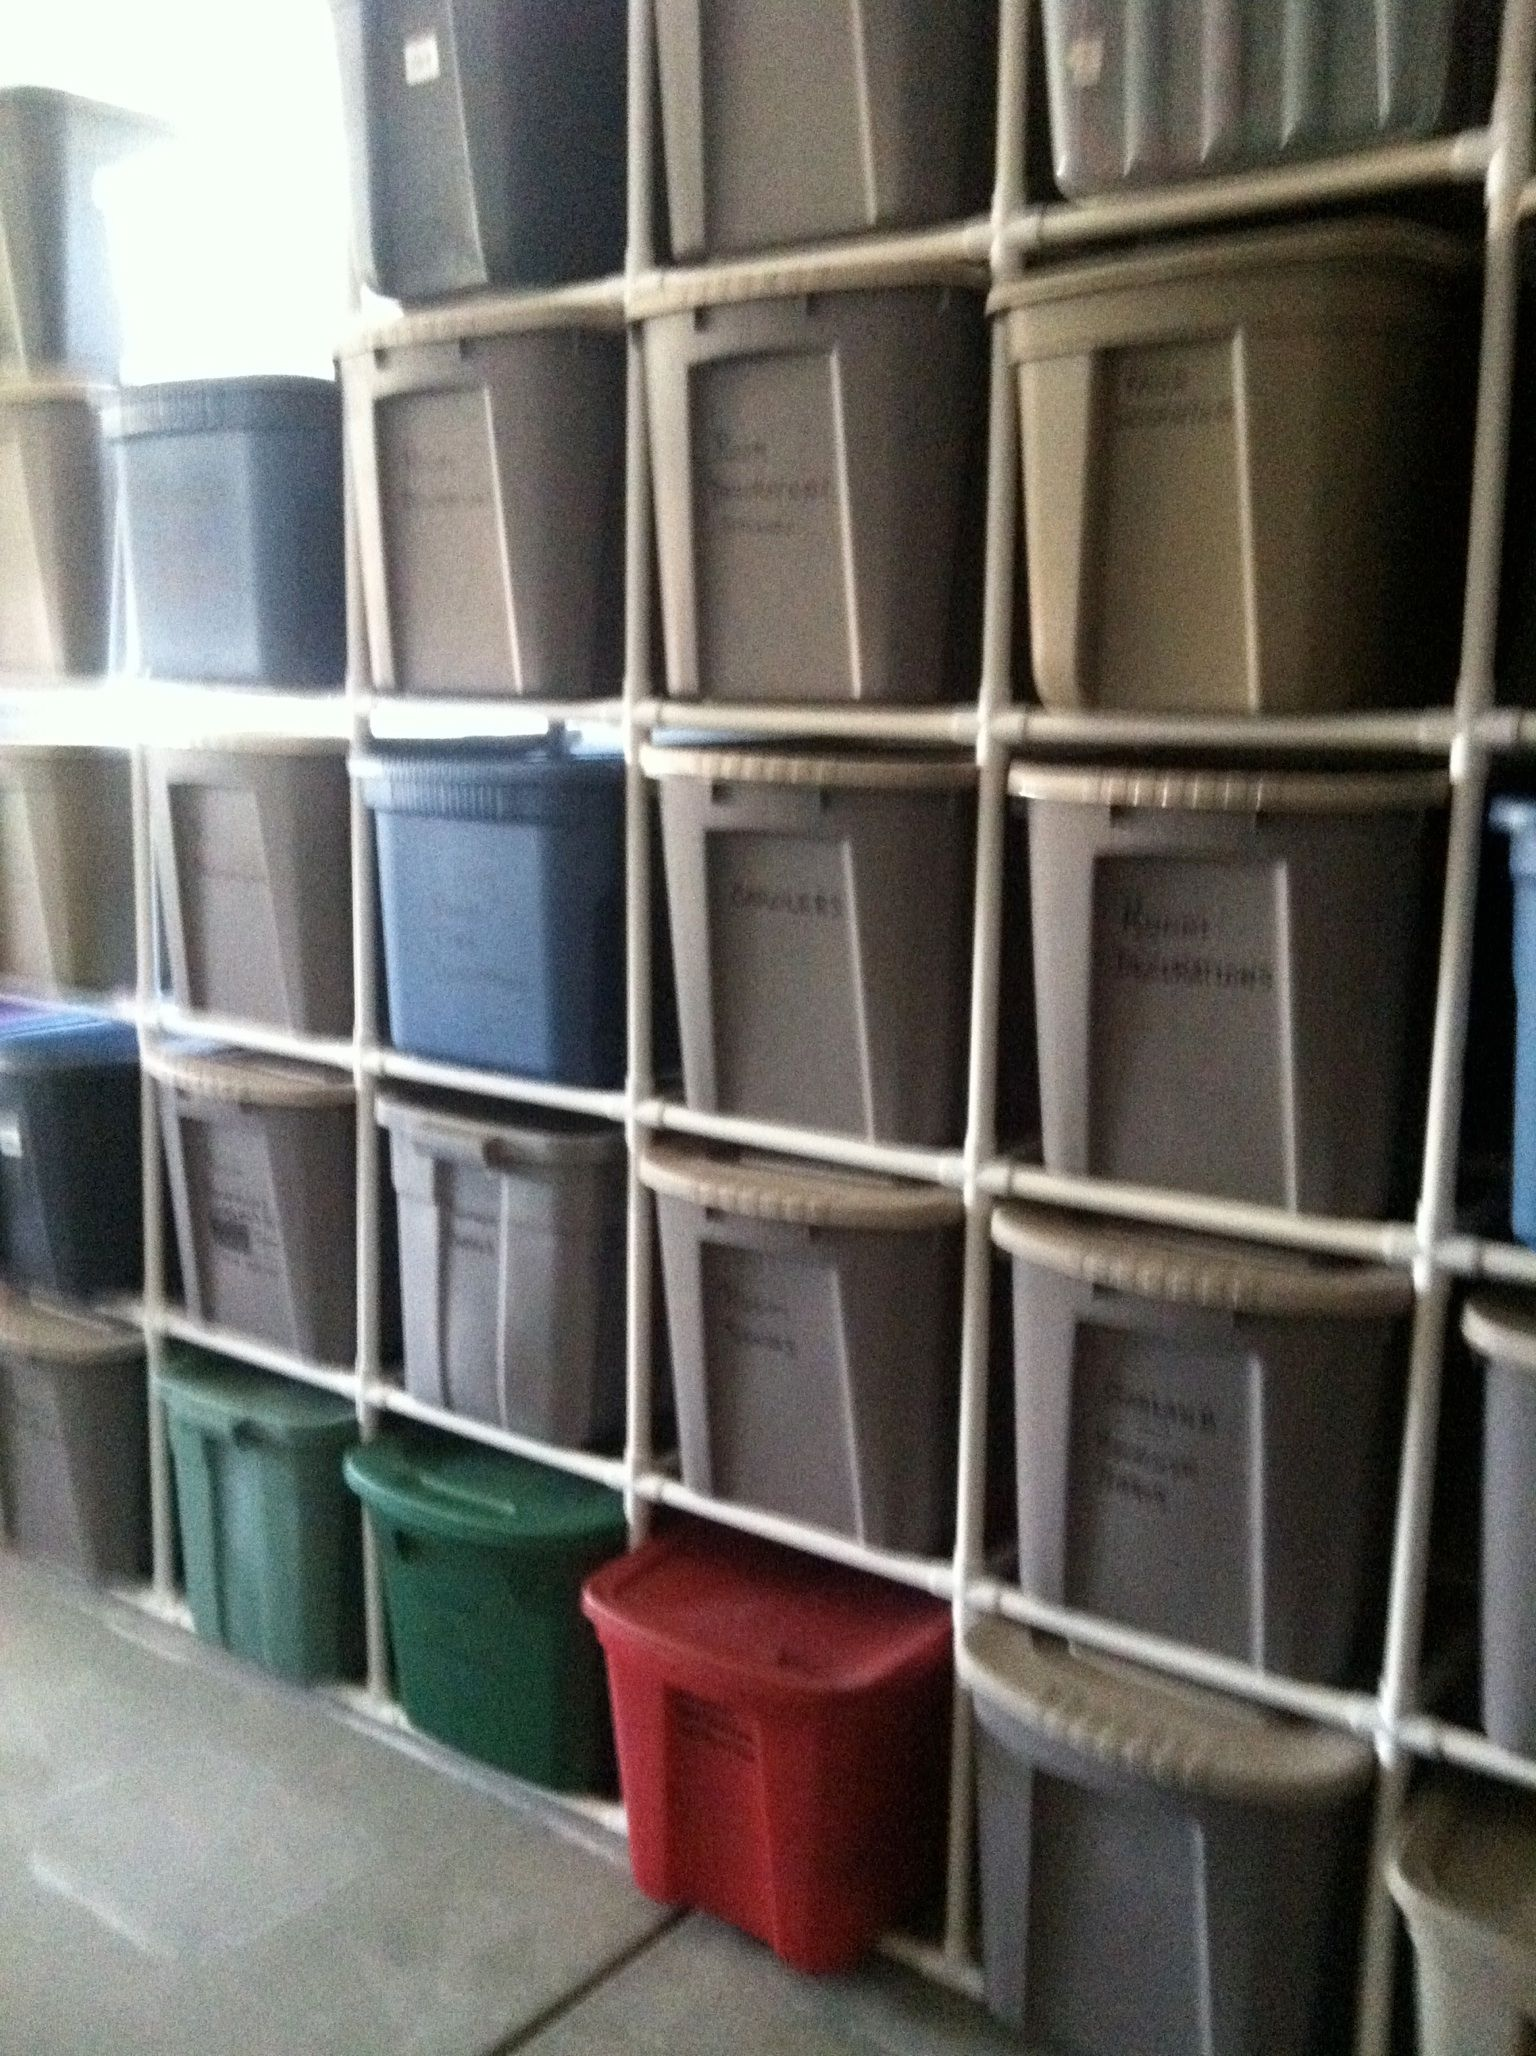 Rubbermaid Tote Storage Shelves Rubbermaid Tote Storage Shelves Storage Bin